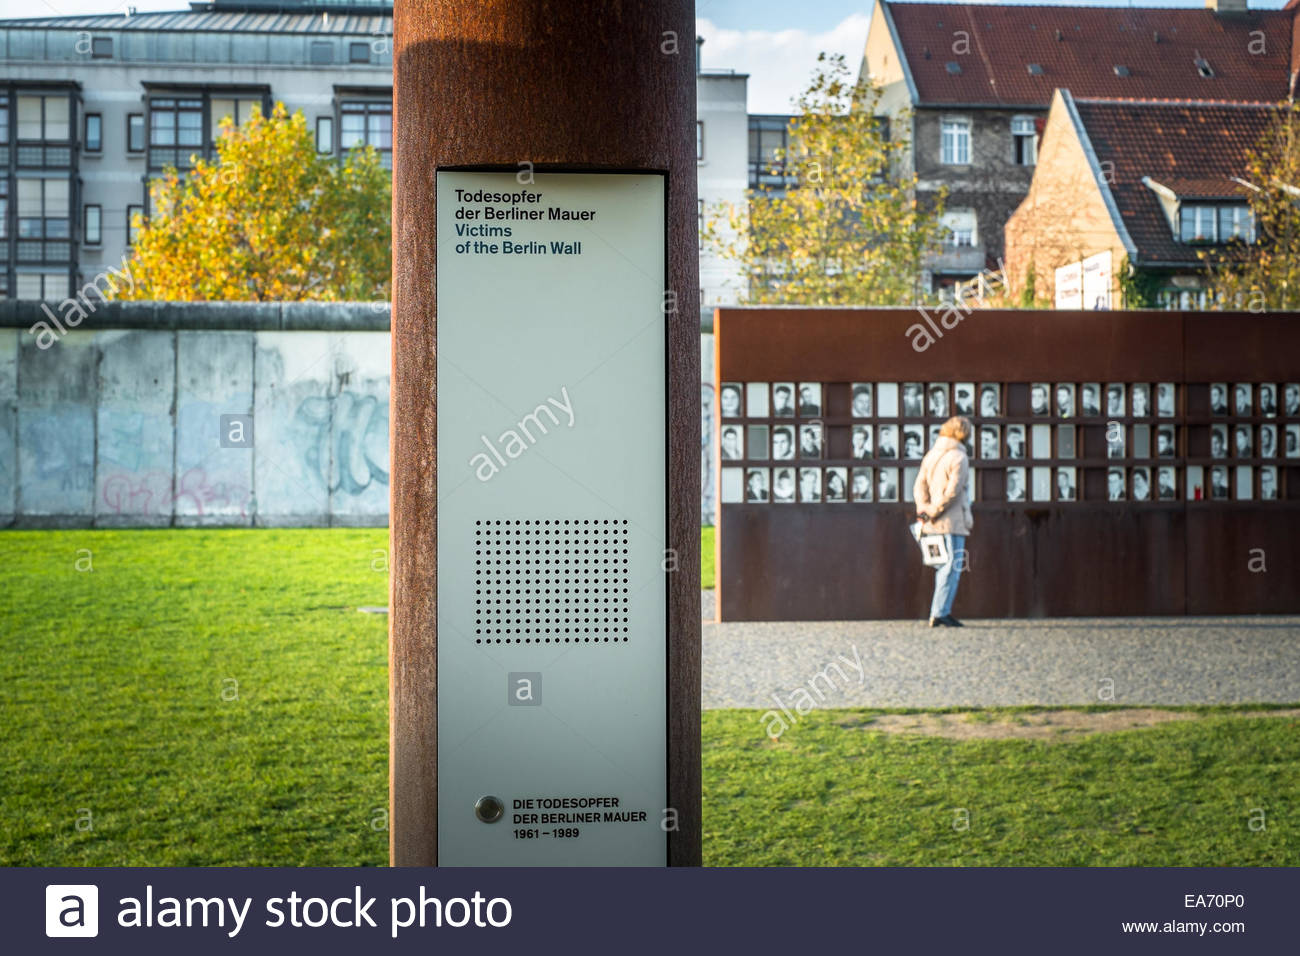 Berliner Mauer Stock Photos & Berliner Mauer Stock Images - Alamy